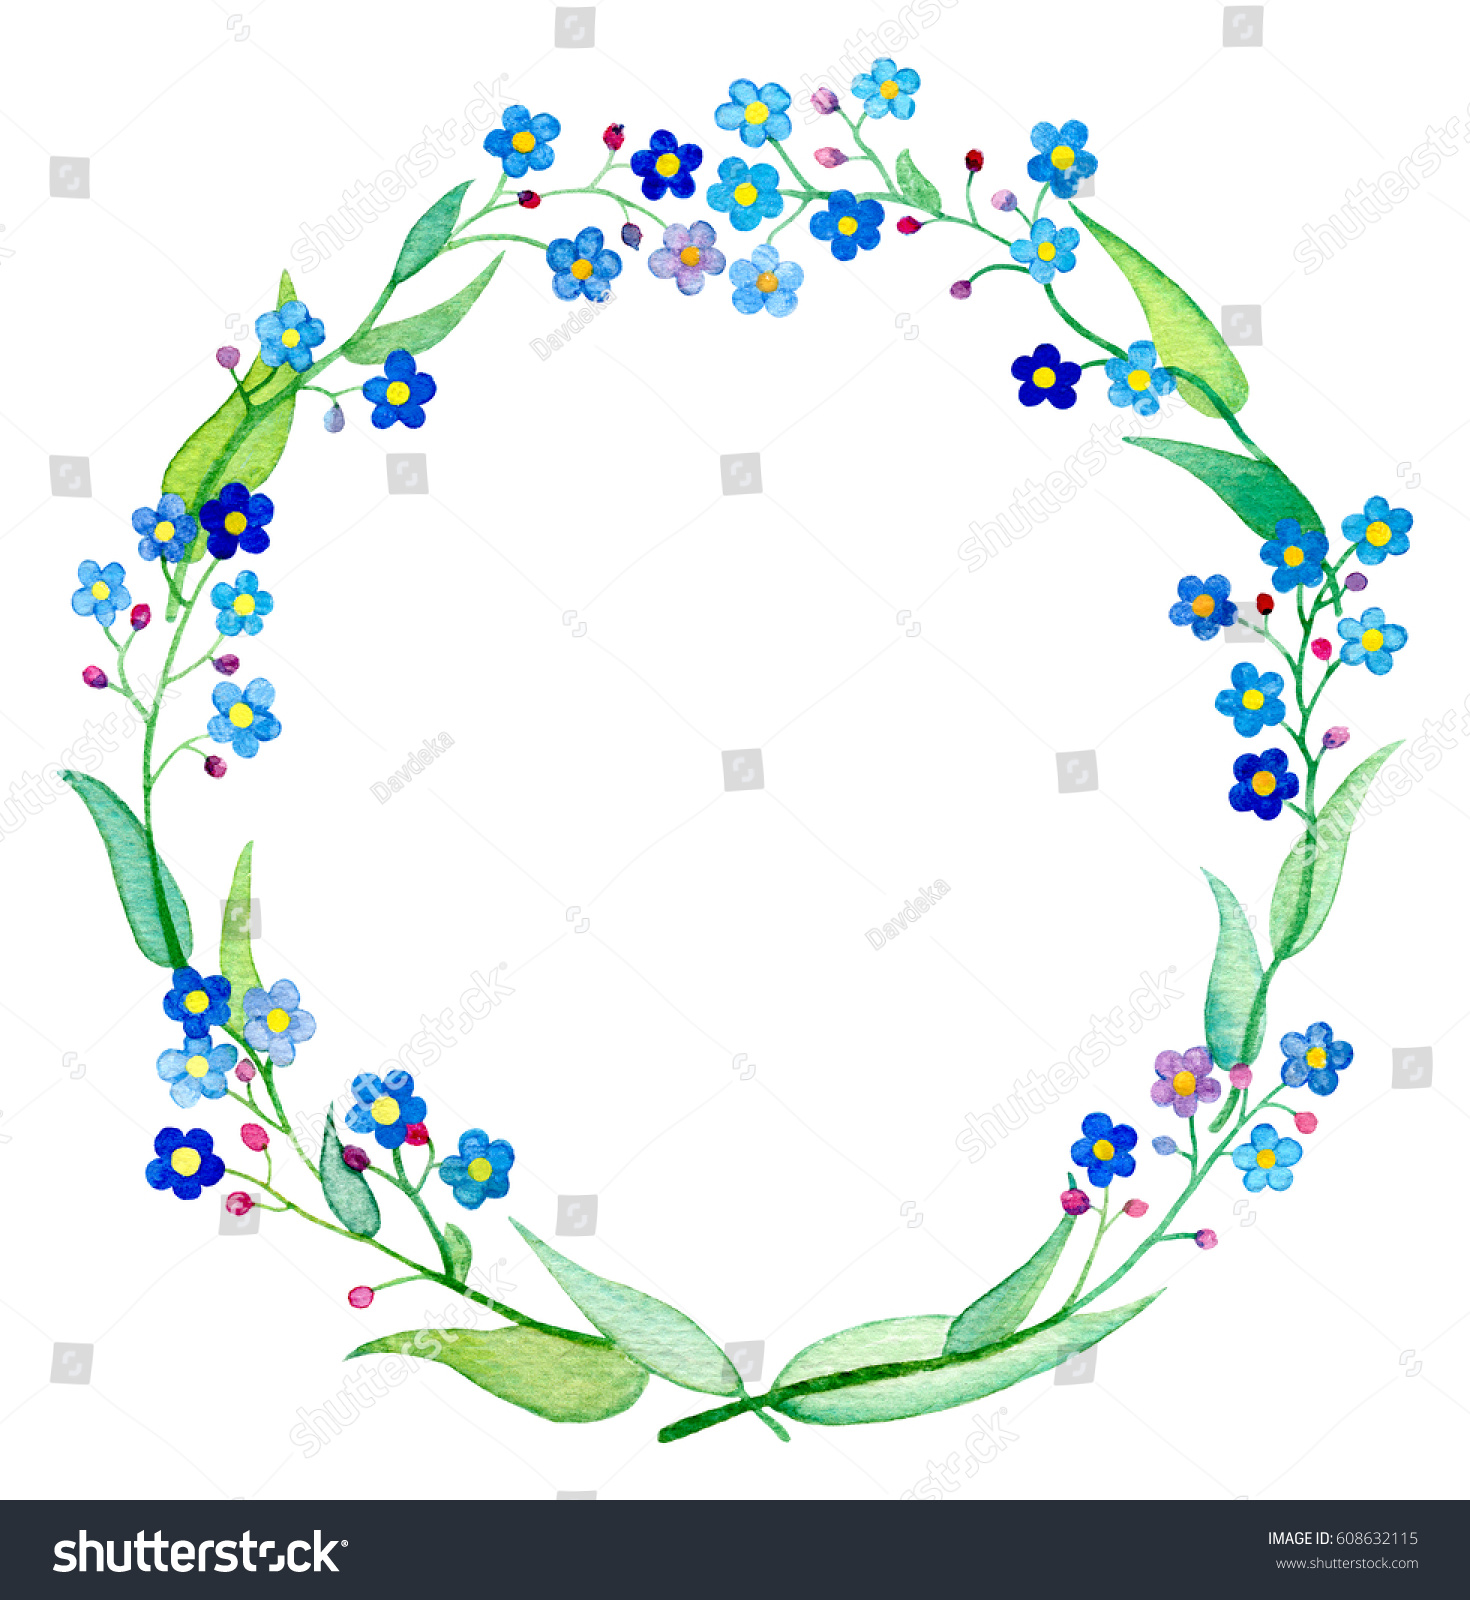 Royalty free forget me not wreath watercolor 608632115 stock photo spring flower forgetmenot with petals and leaves handdrawn floral wreath spring wedding design clipart blue flower arrangement forget me not frame stock izmirmasajfo Gallery